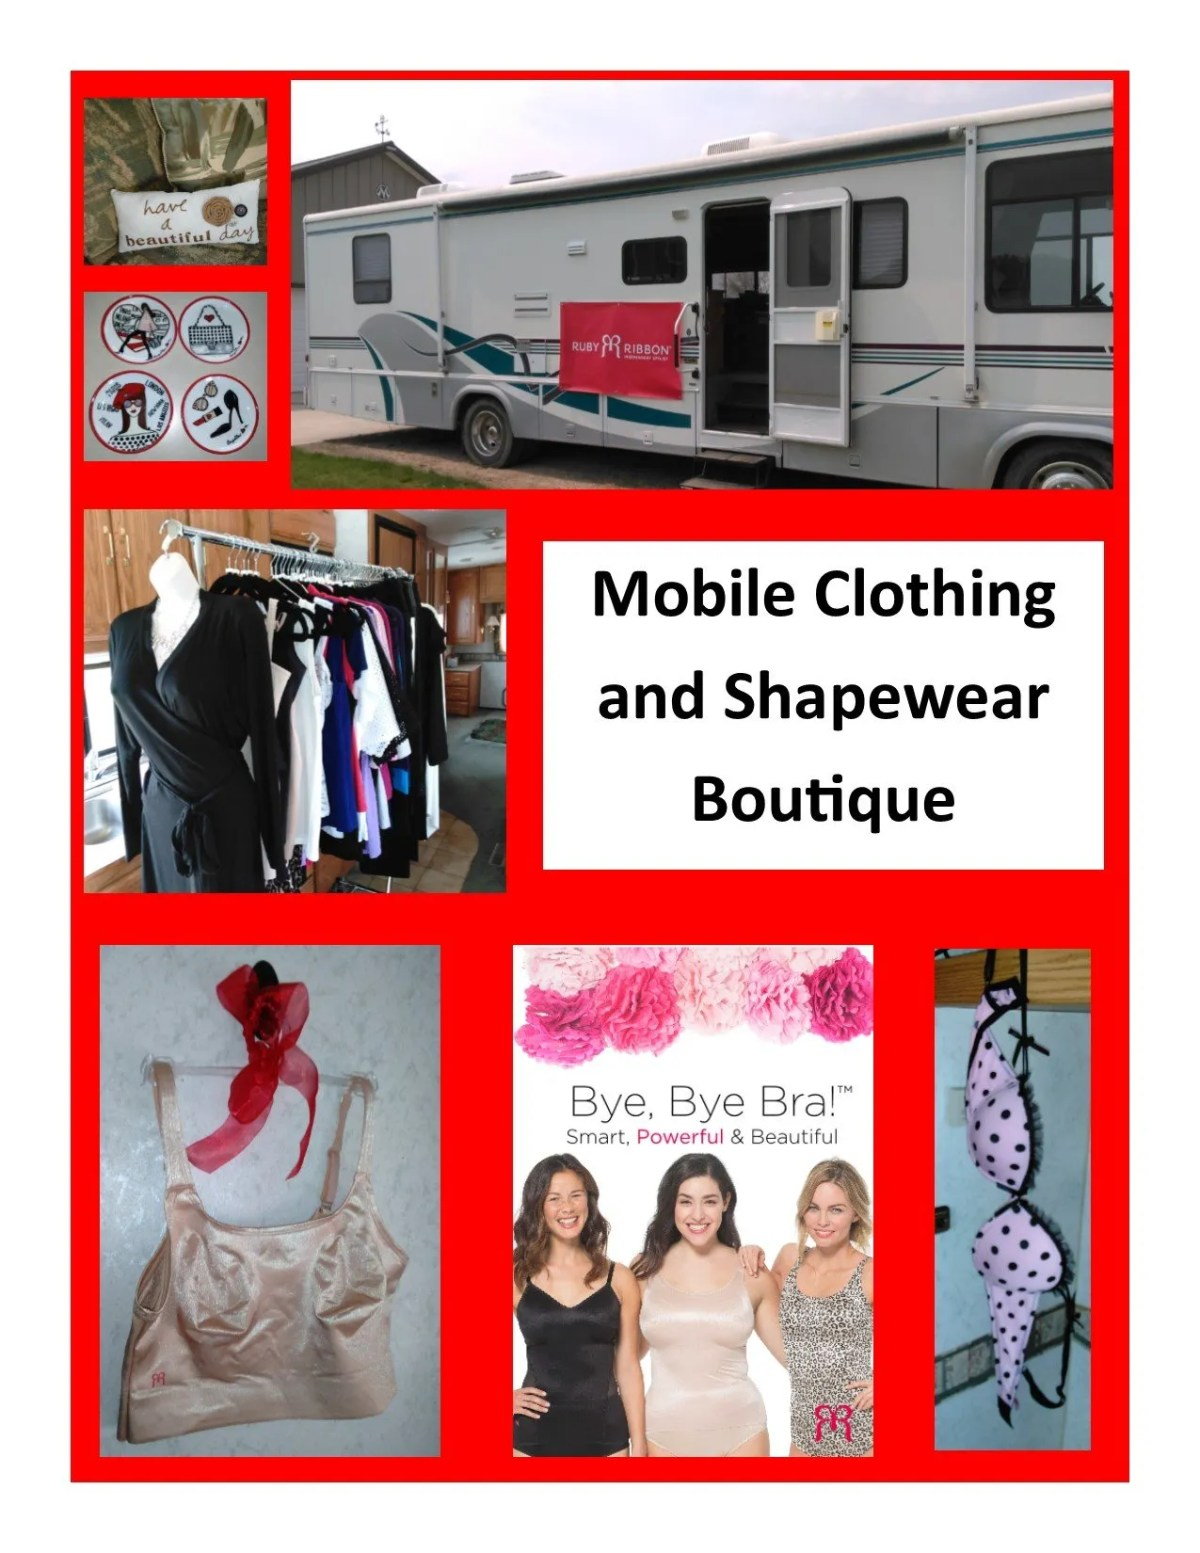 mobile boutique photo collage 1